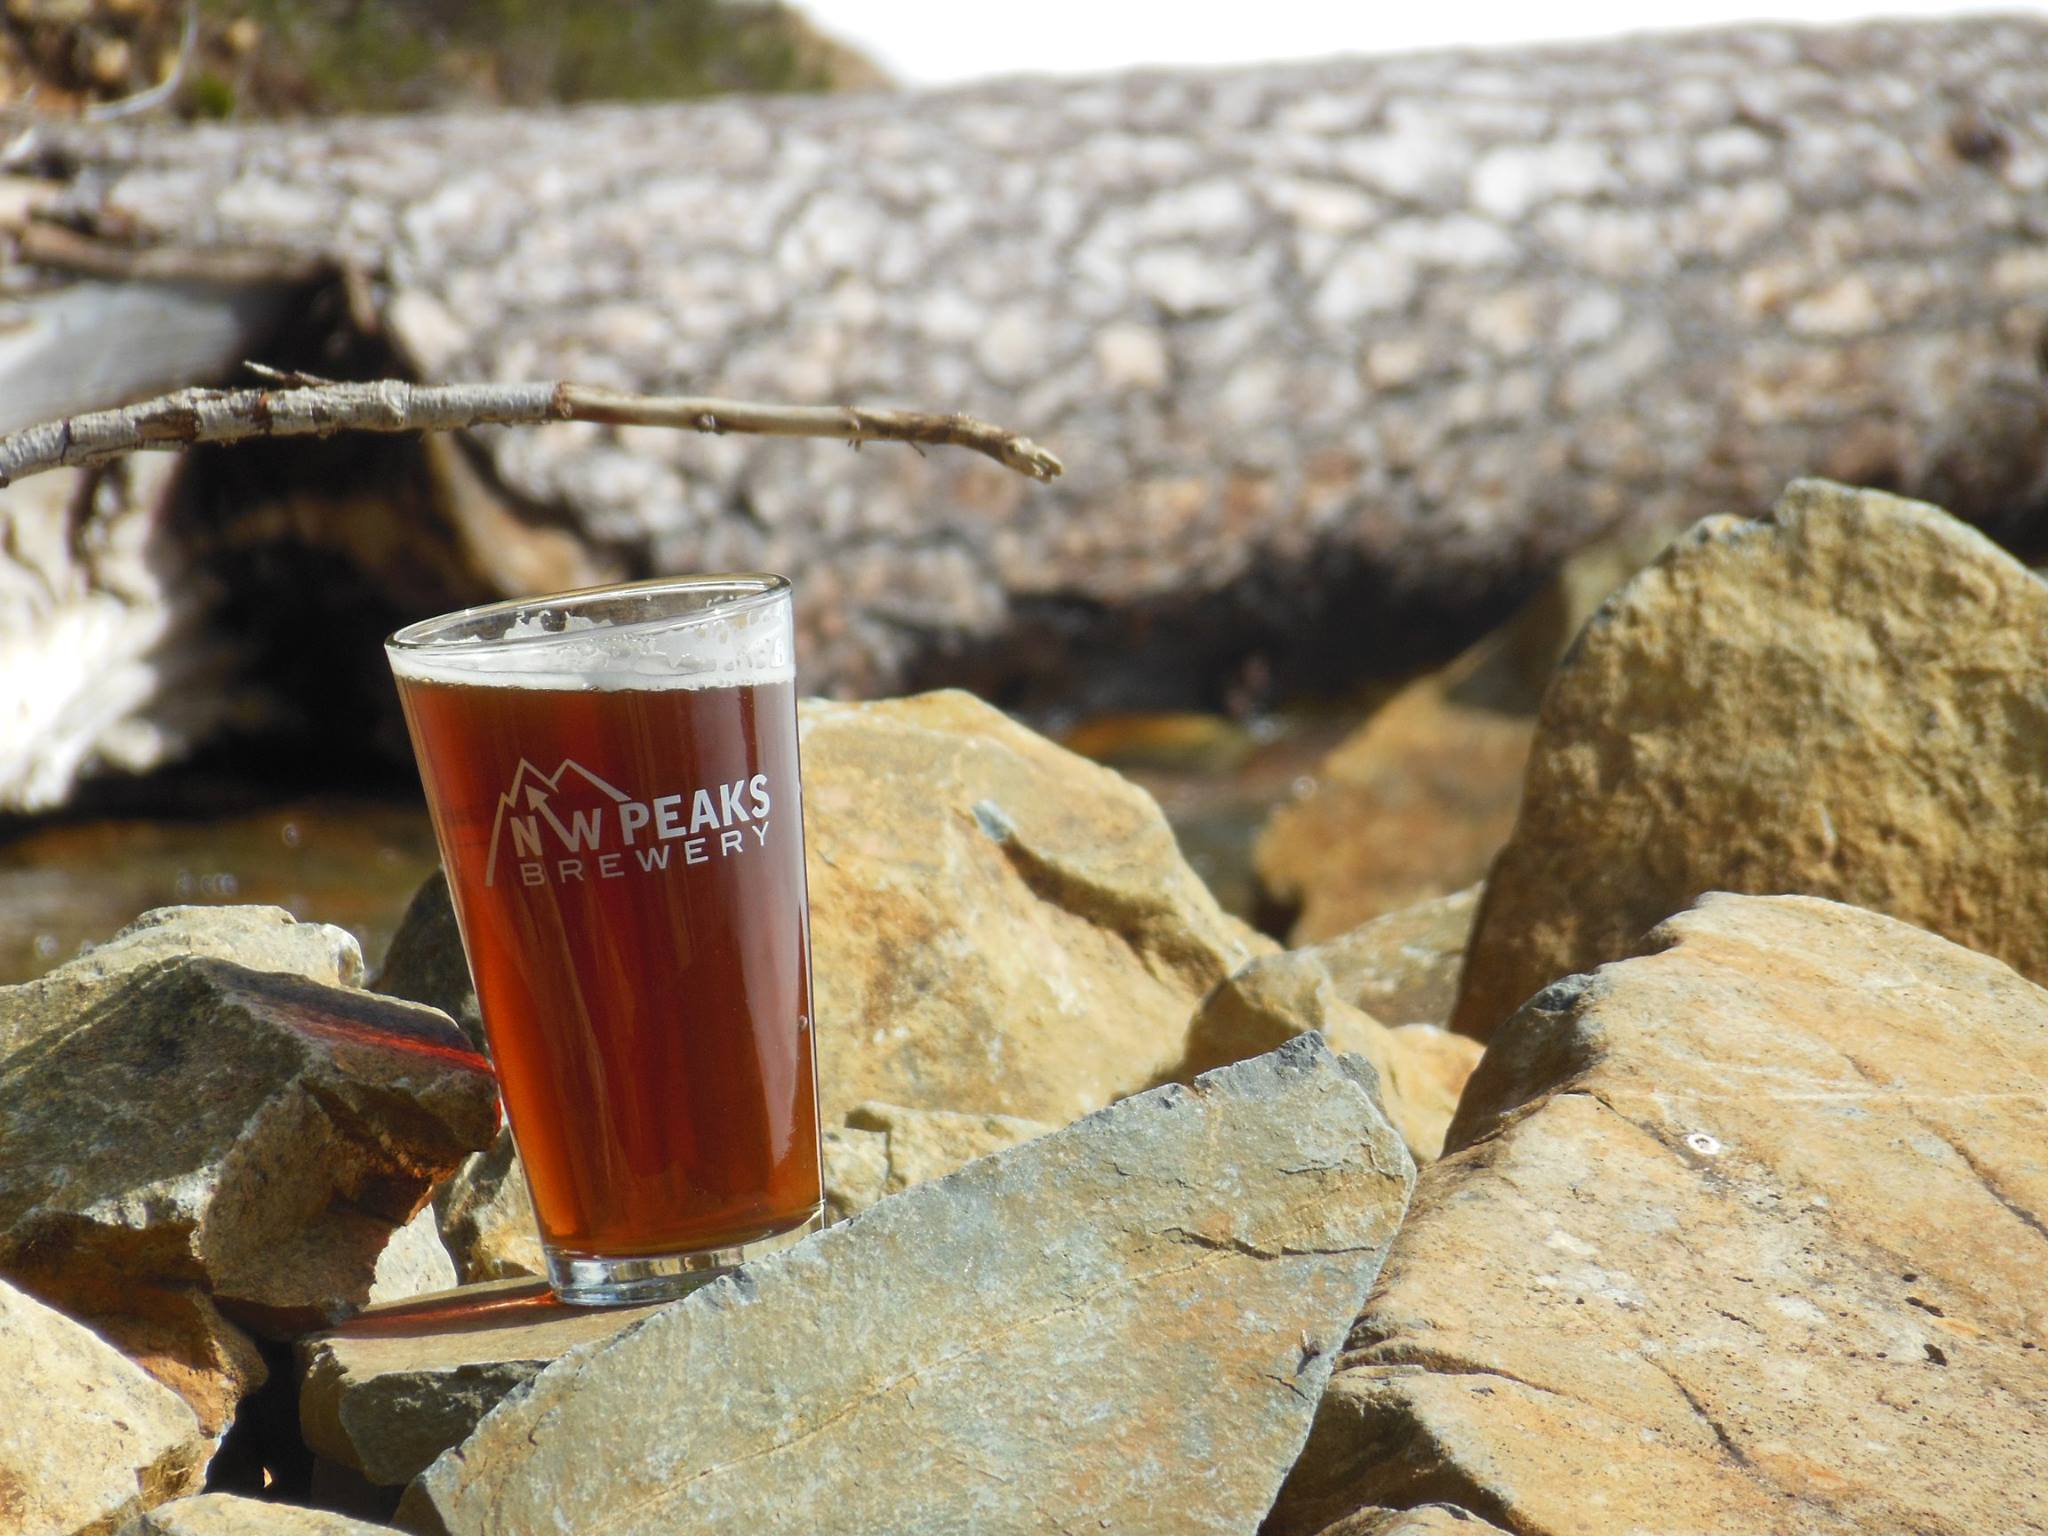 A view of a pint glass showing the NW Peaks logo, sitting on a rock cropping outside.